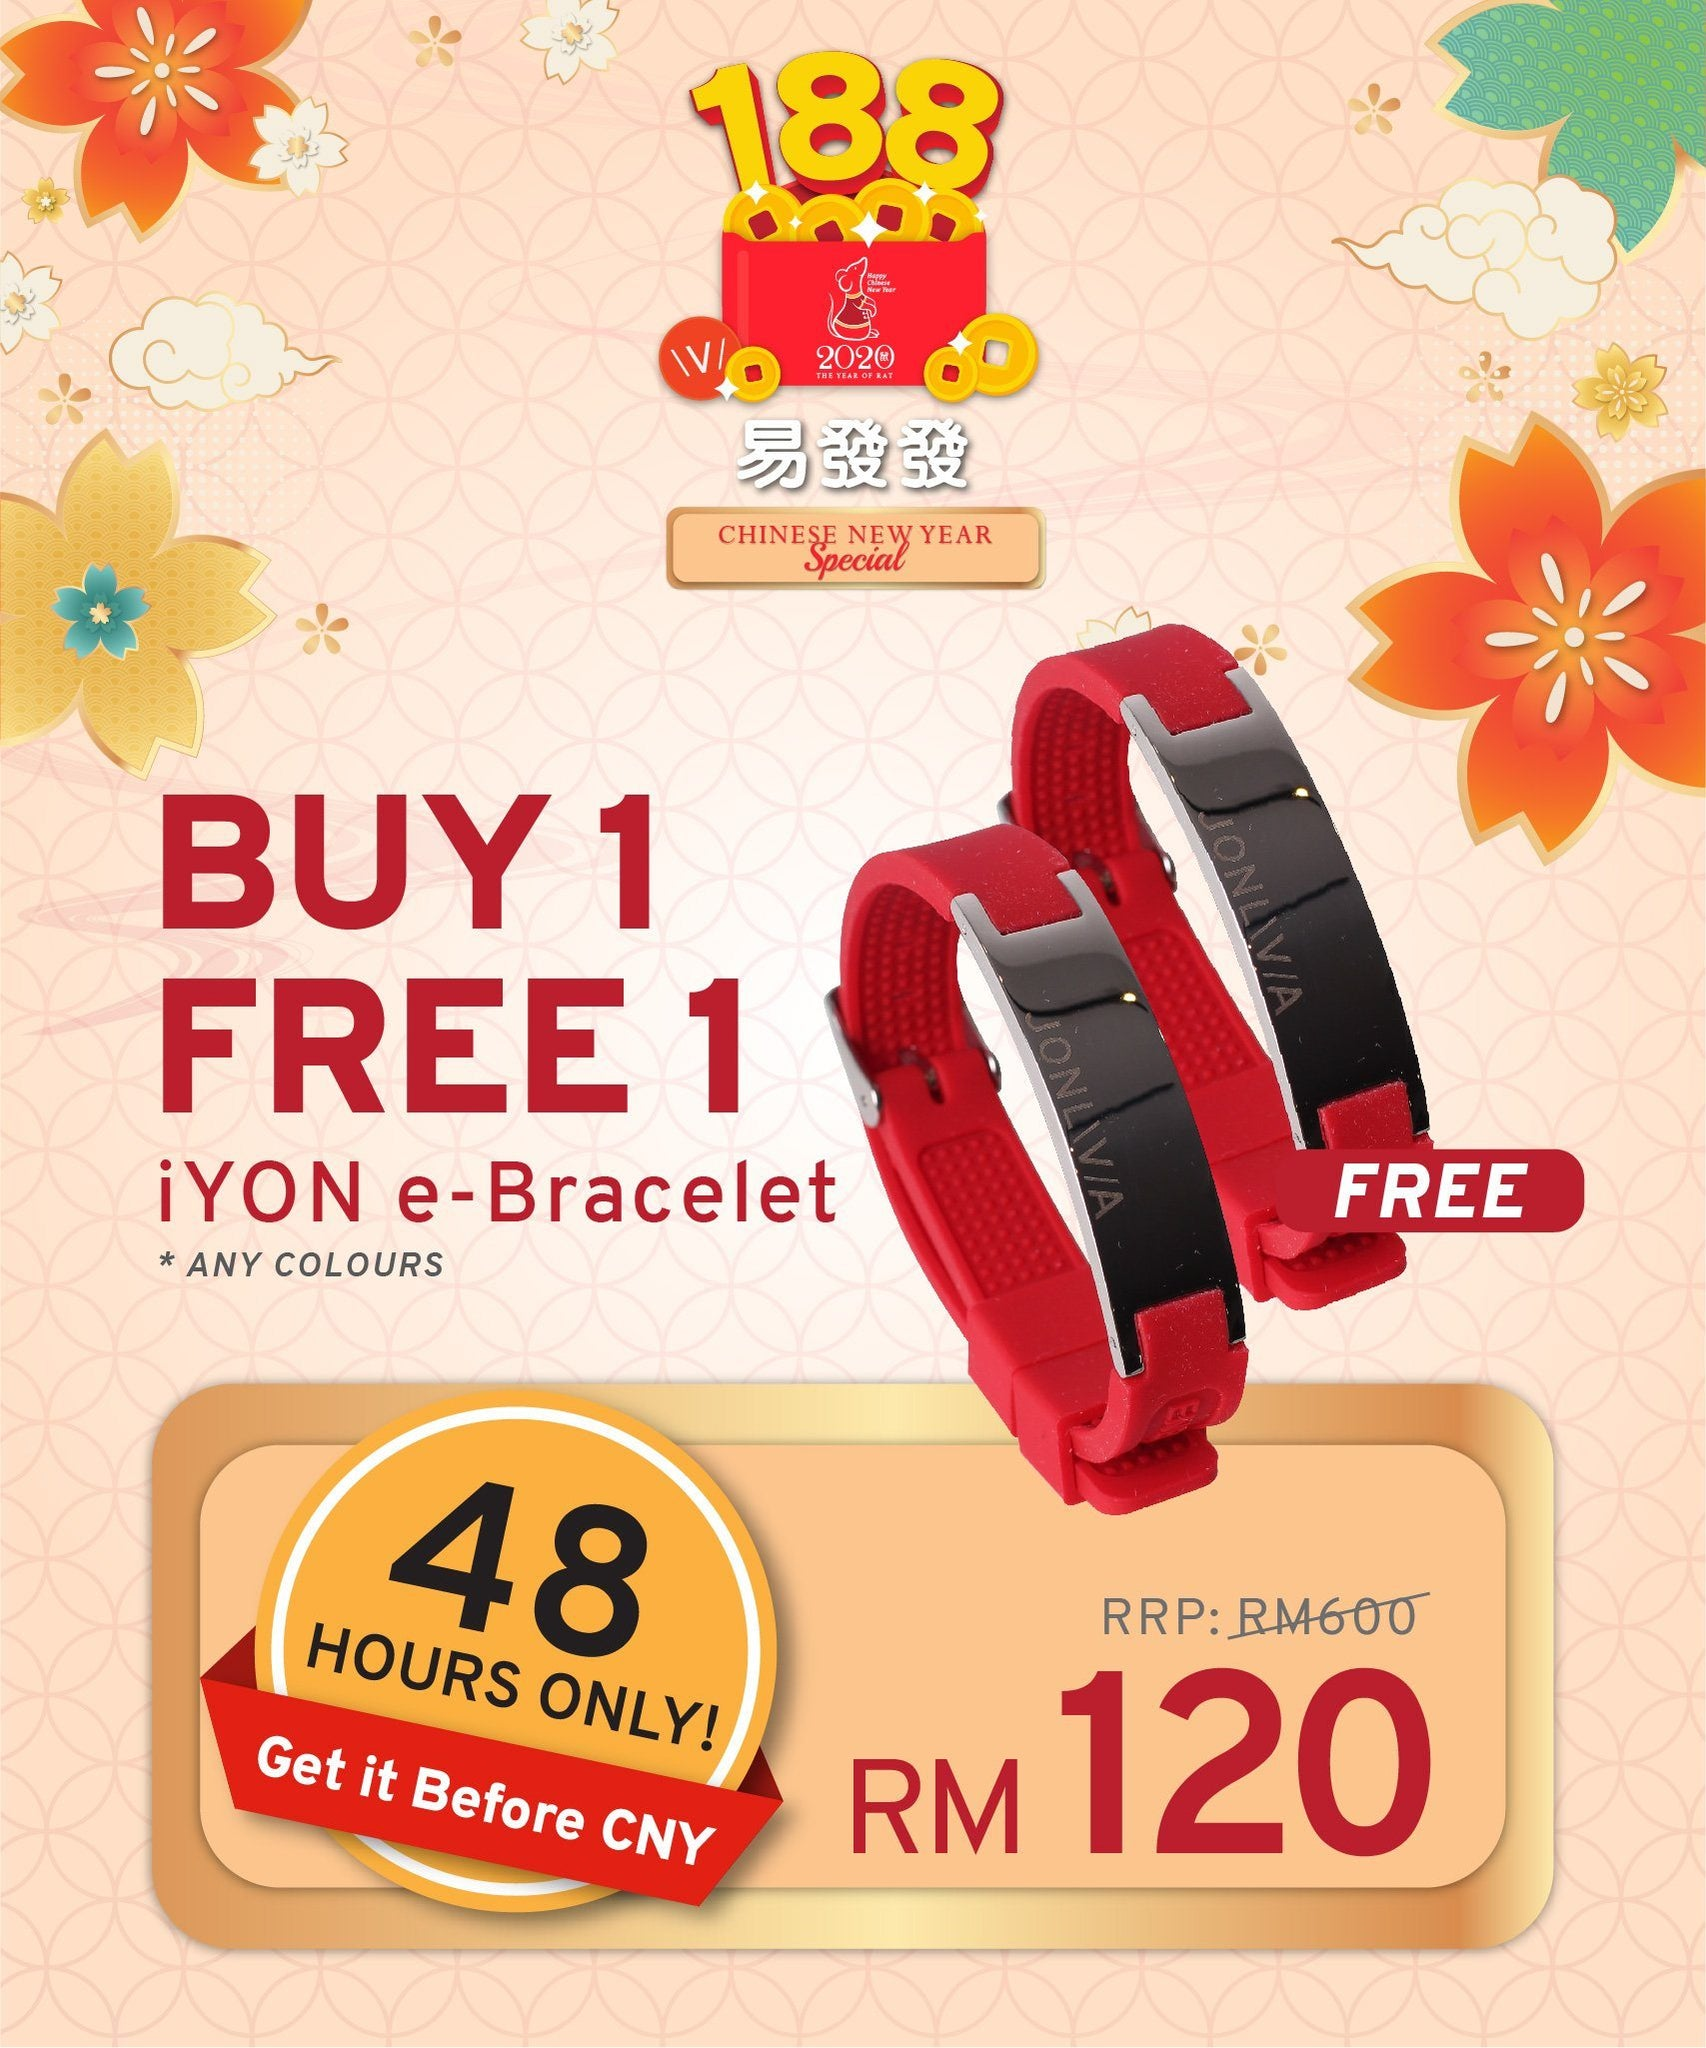 48 HOURS ONLY, BUY 1 FREE 1 iYON E-Bracelet - Get it Before CNY